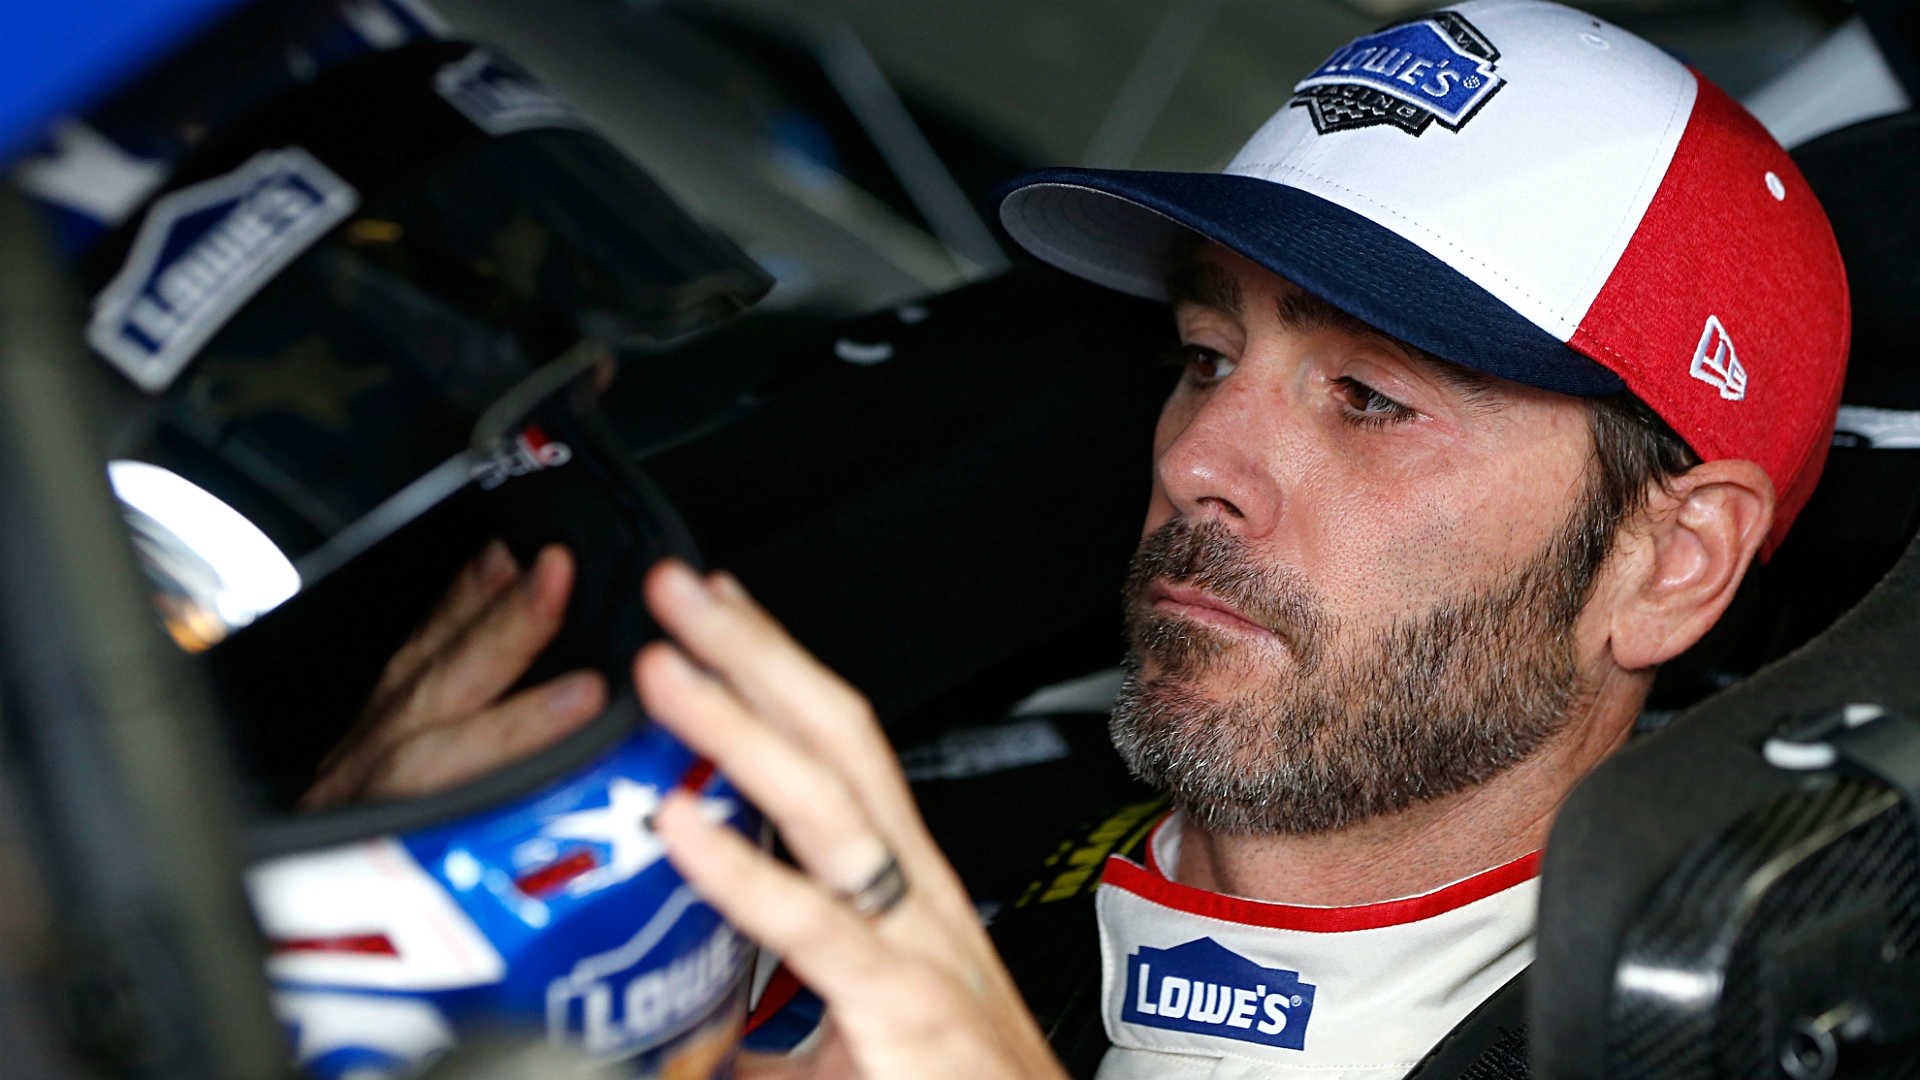 NASCAR at Charlotte: New primary sponsor for Jimmie Johnson? Get in line